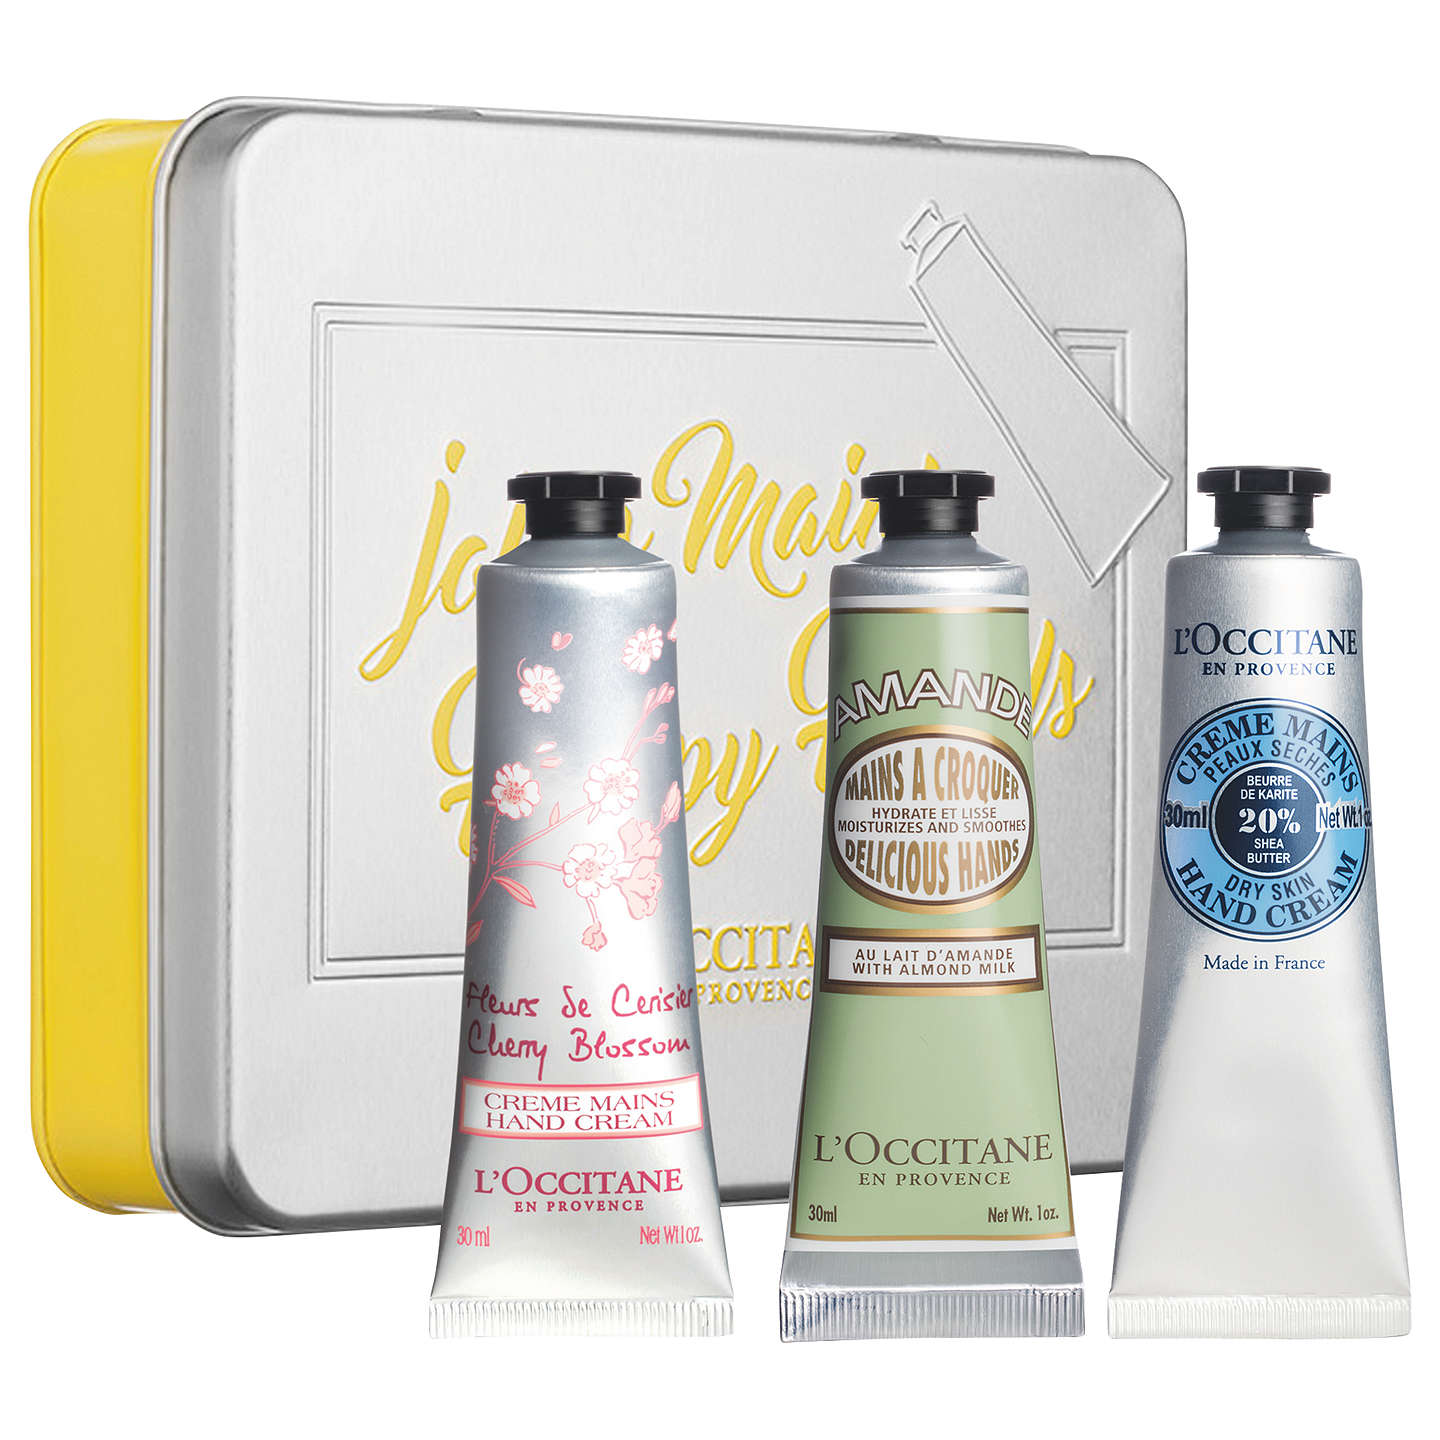 BuyL'Occitane Classic Hand Cream Trio Set Online at johnlewis.com